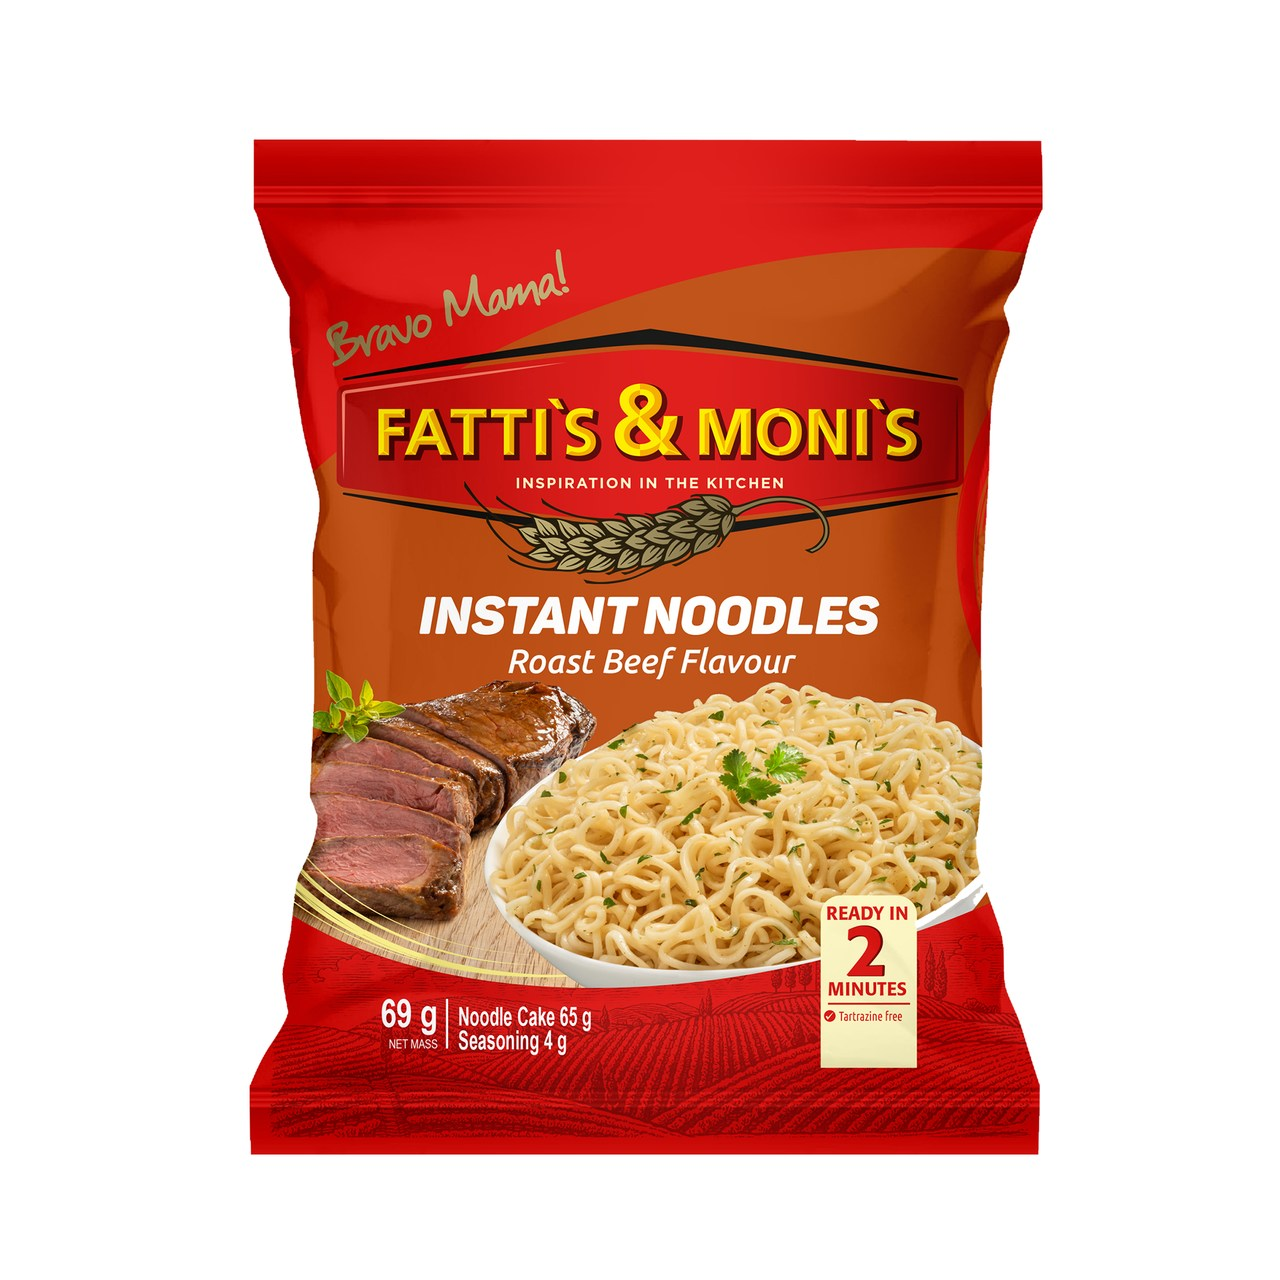 Fattis and Monis Instant Noodles Roast Beef